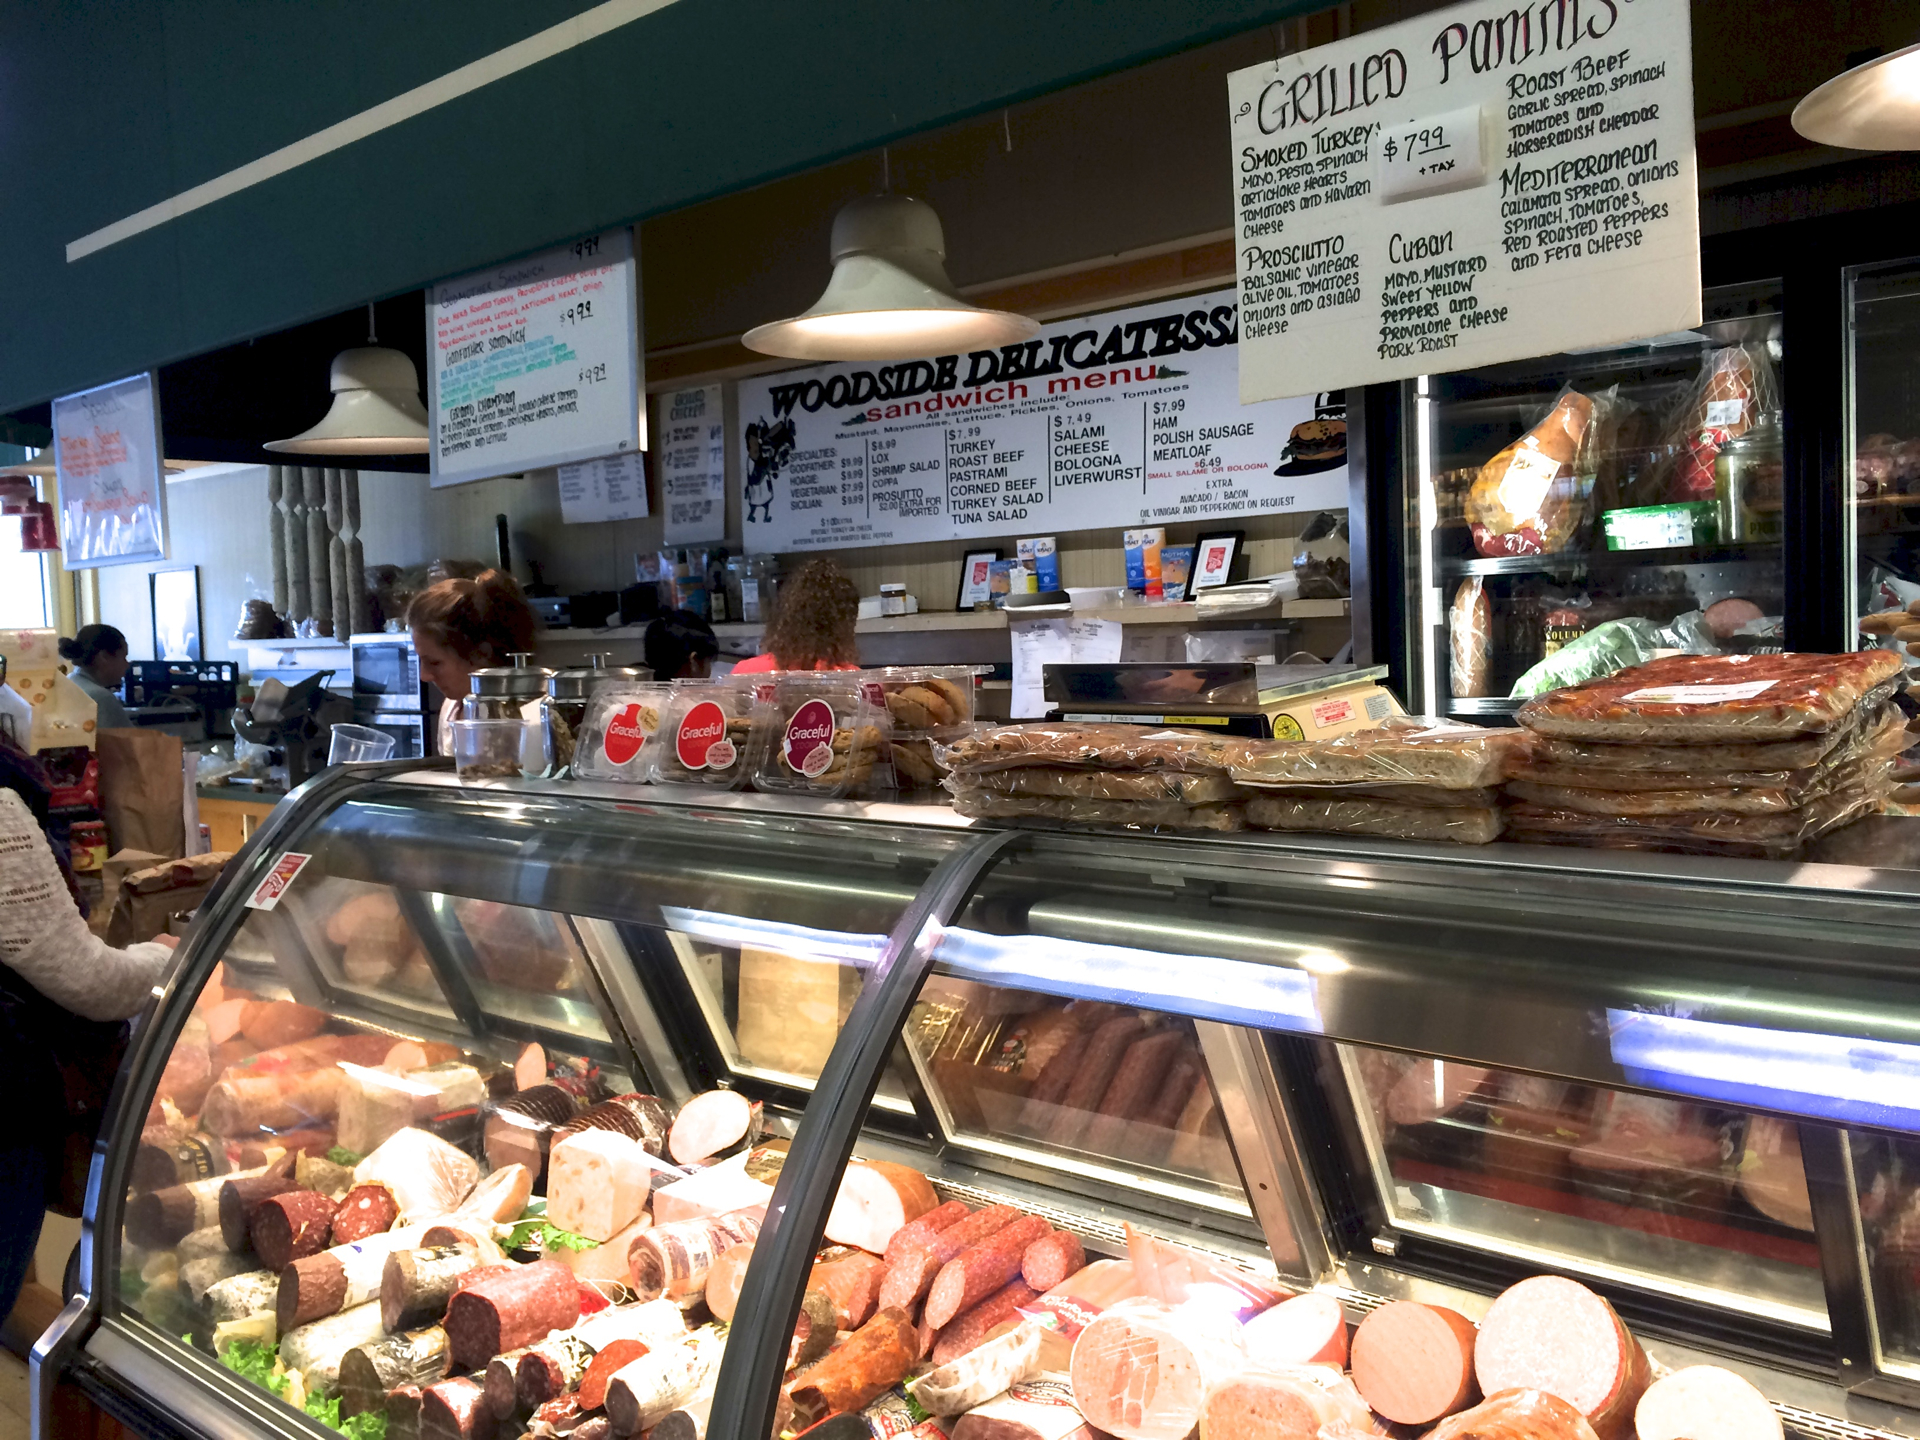 The deli counter at Woodside Deli.